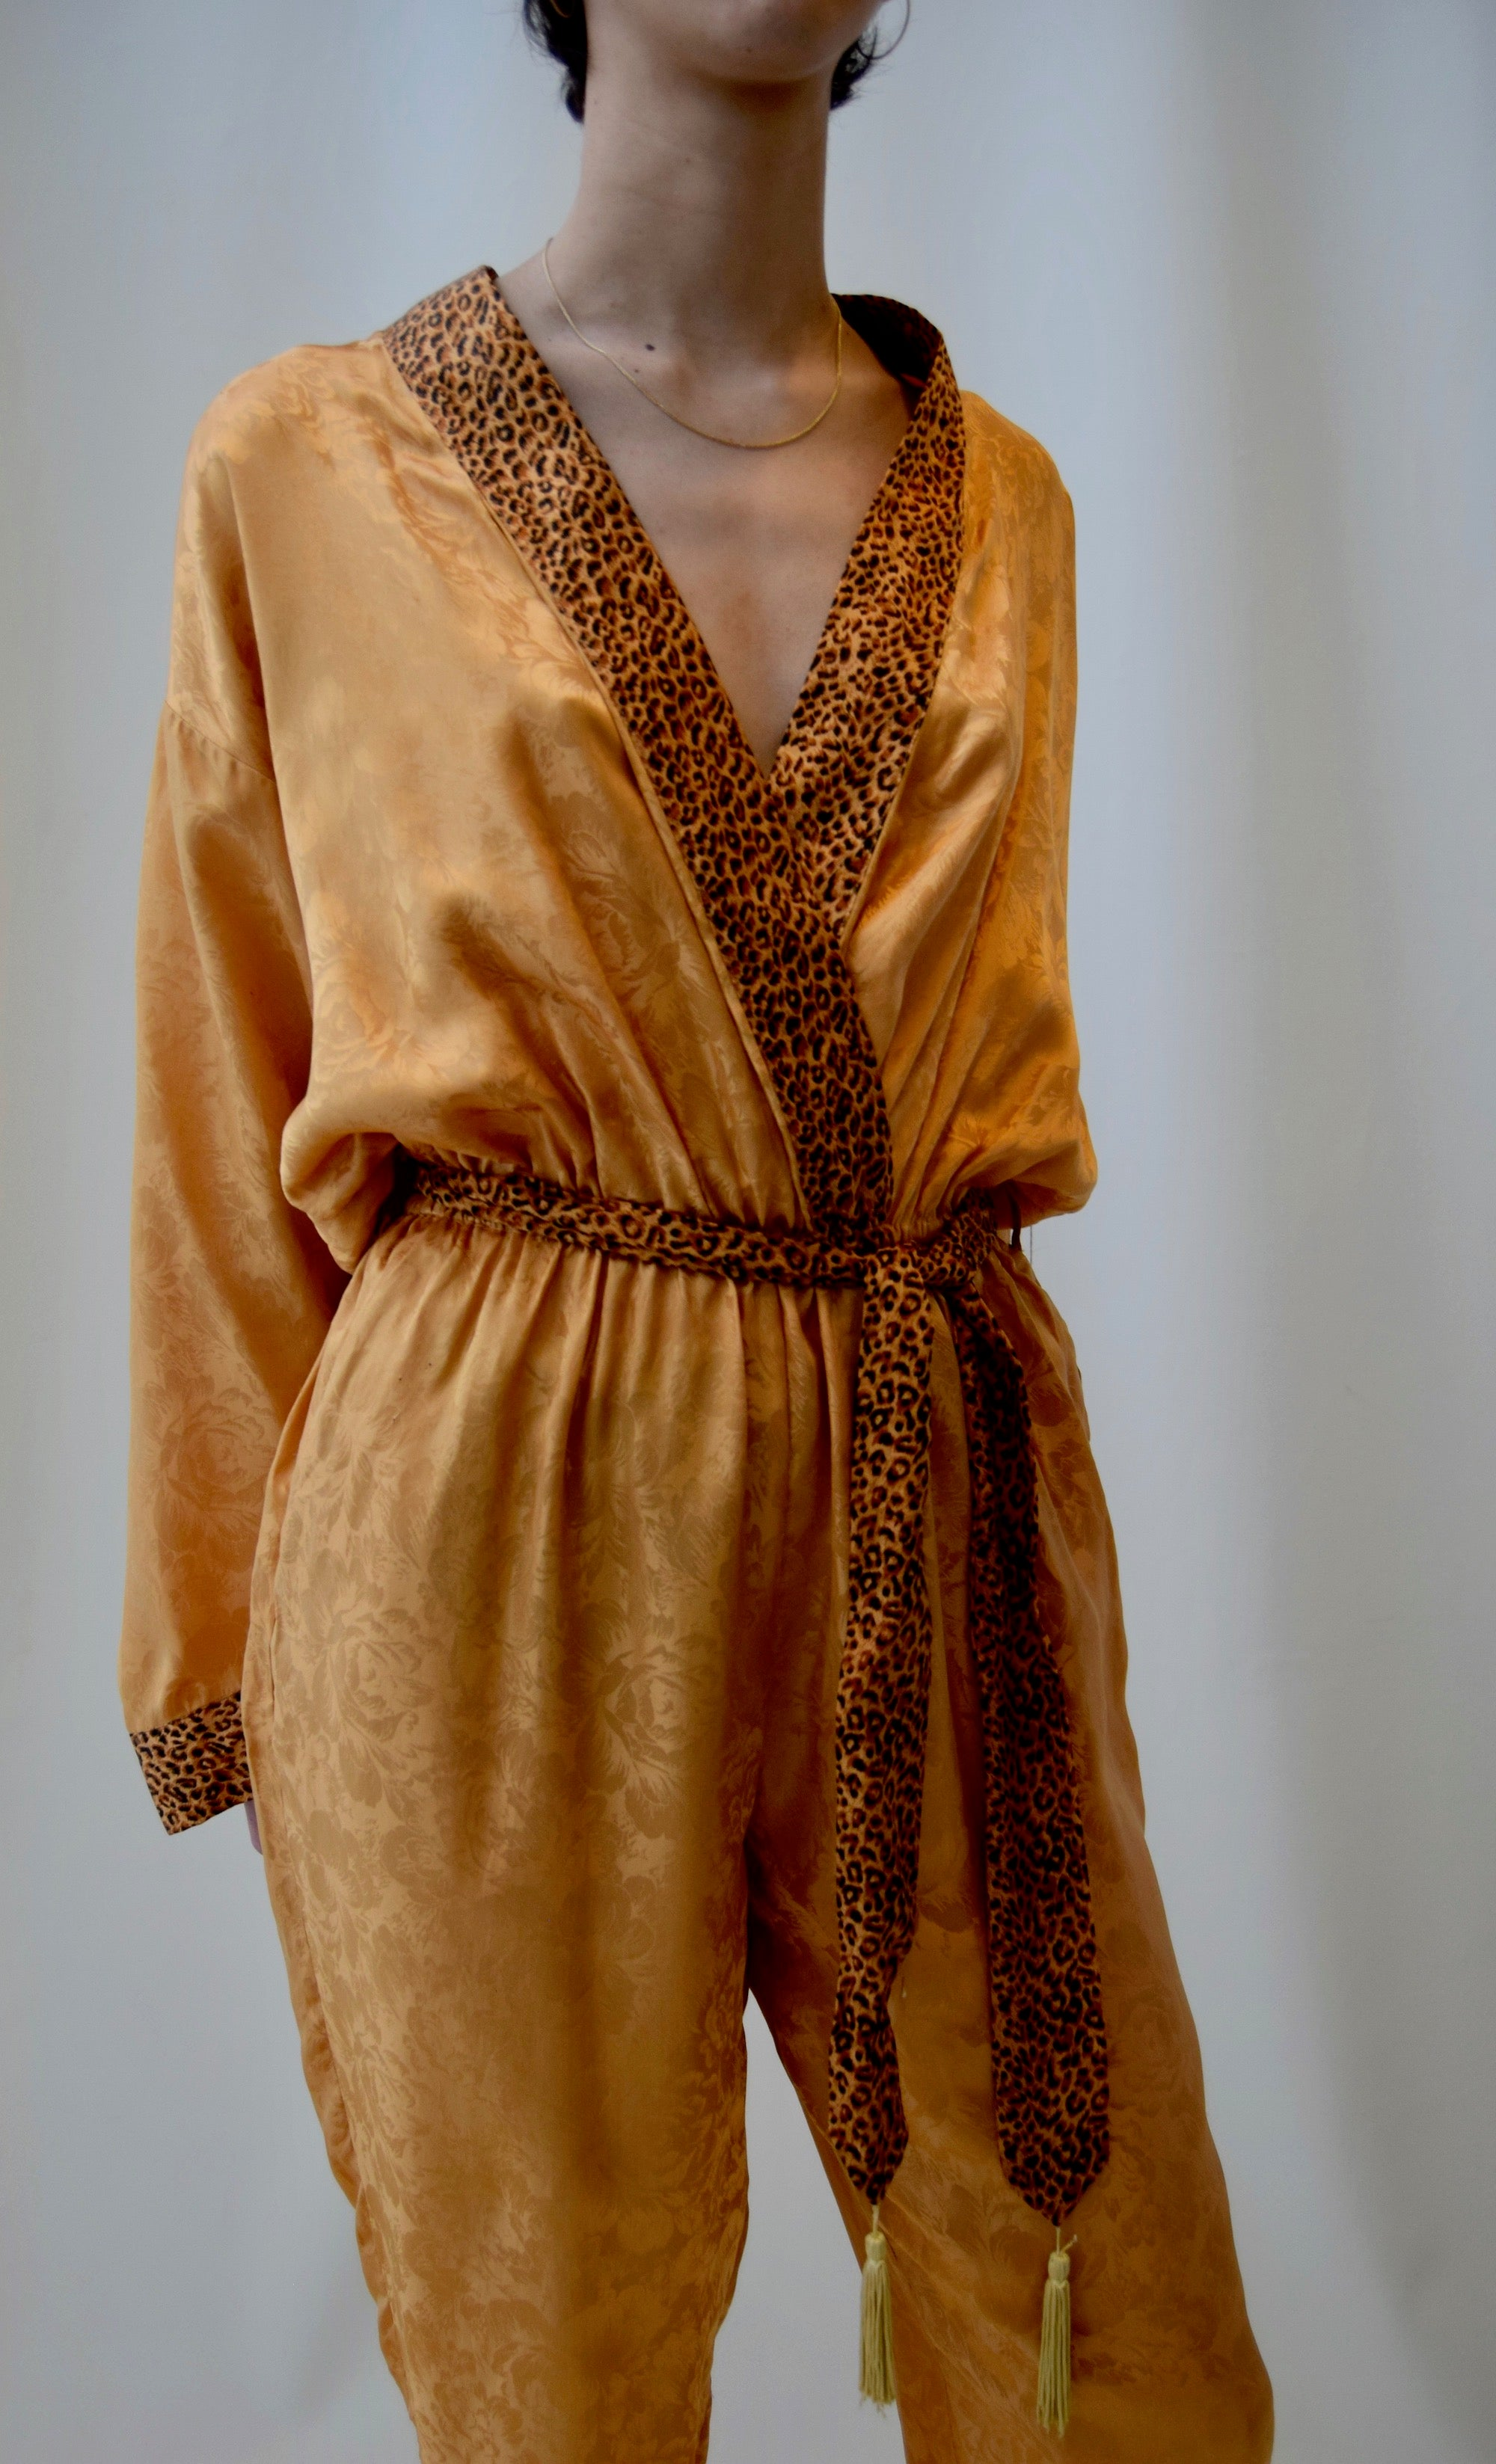 Gold Leopard Silk Robe Tie Jumpsuit FREE SHIPPING TO THE U.S.